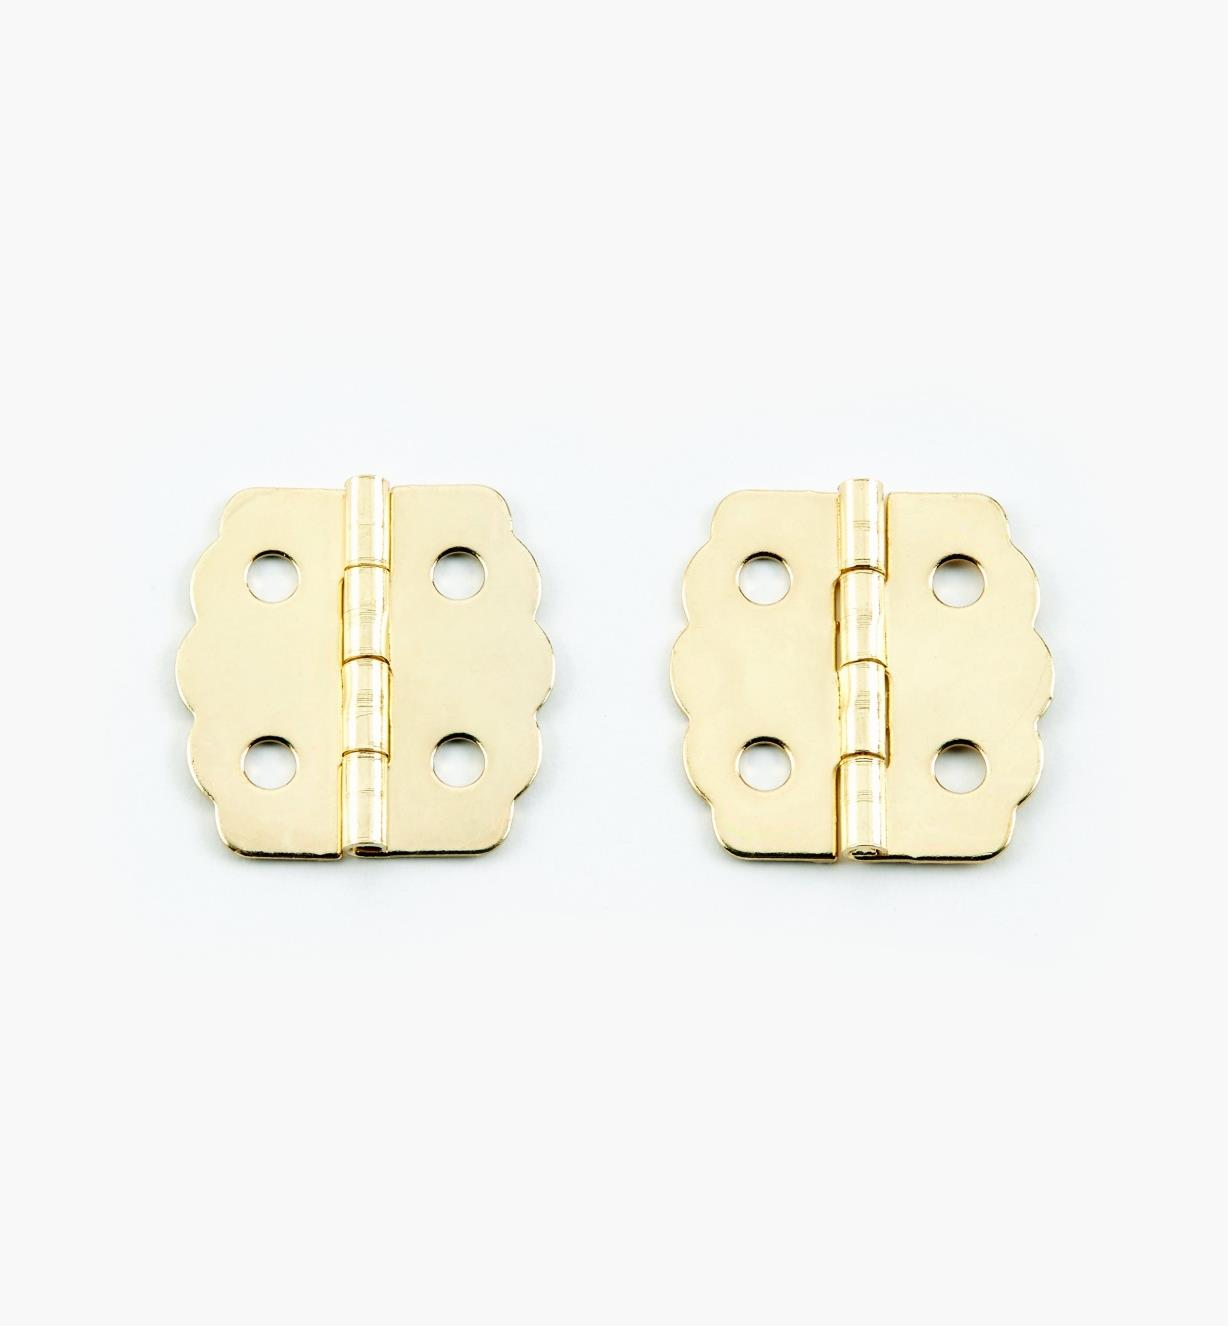 00D8030 - 23mm x 22mm Decorative Hinges, pr.